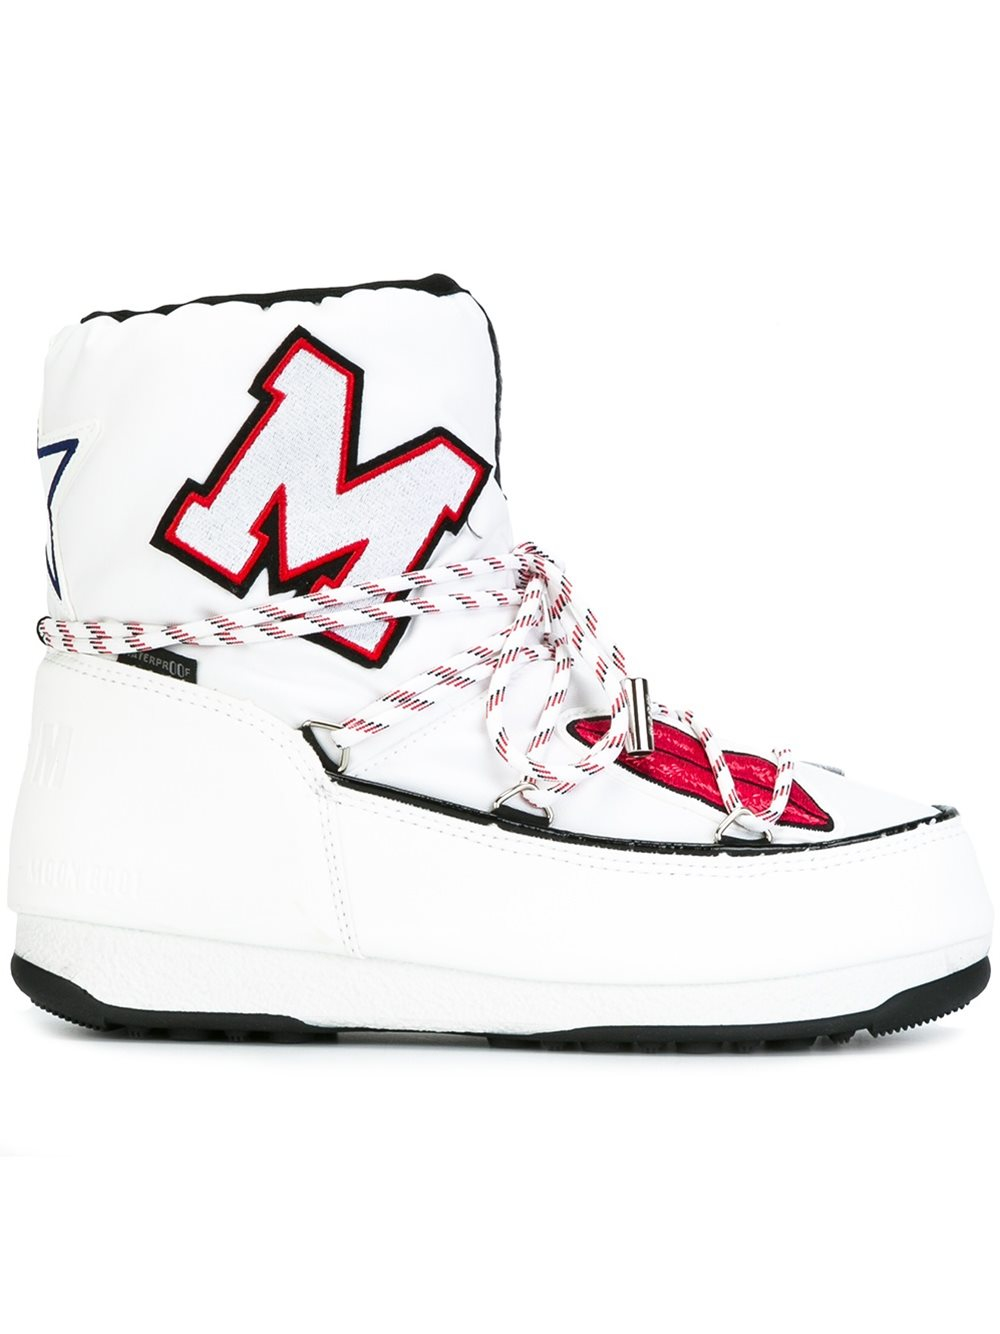 4f77071d137a Lyst - MSGM X Moon Boot Apres-ski Boots in White